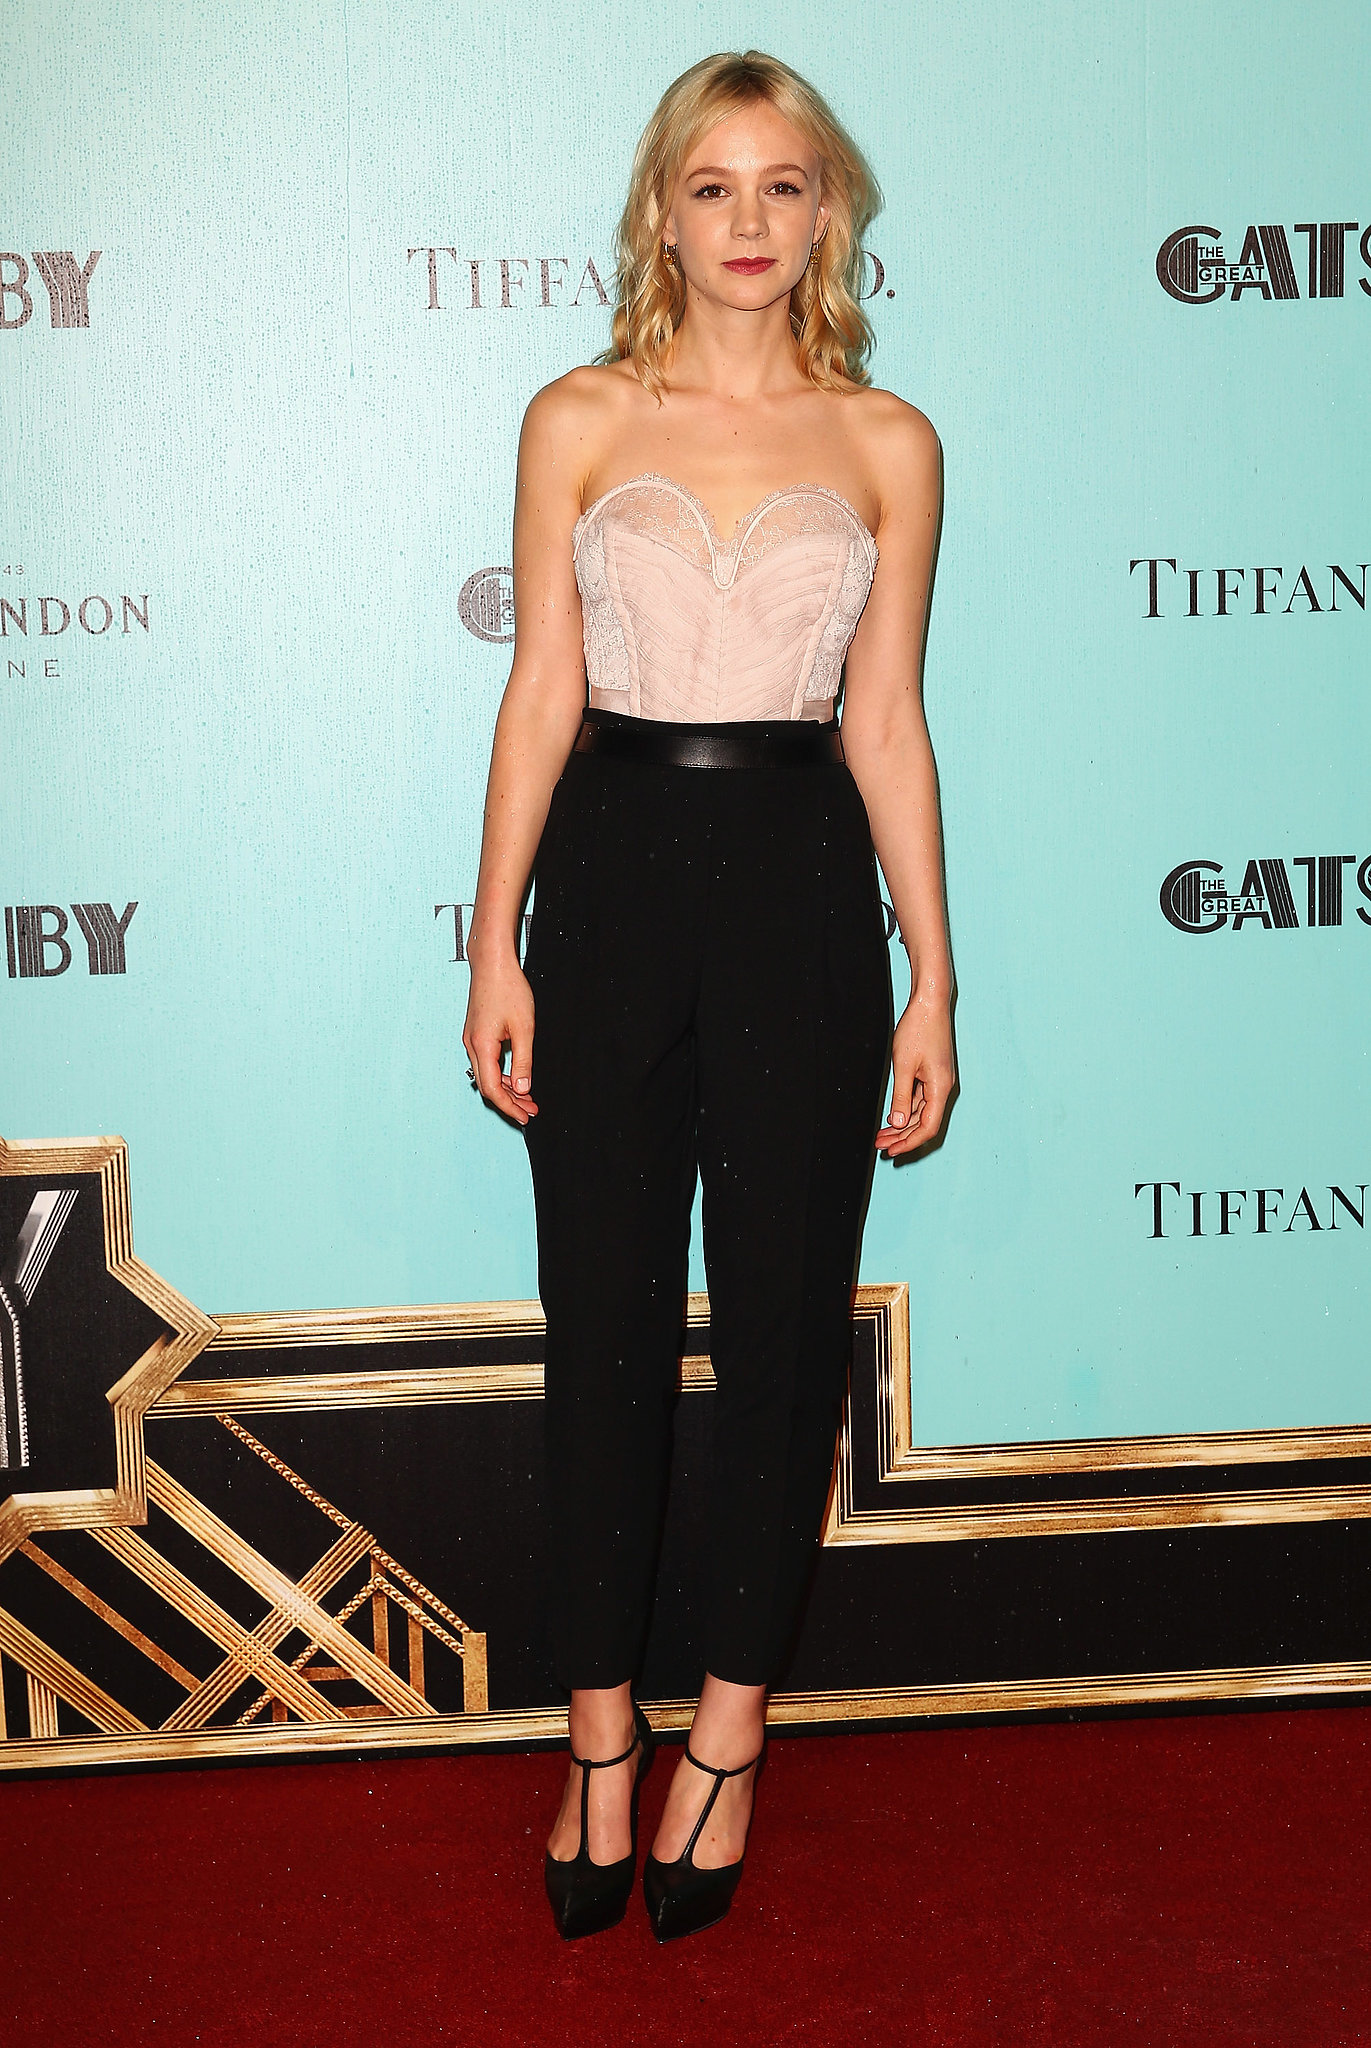 Carey Mulligan tucked a pale pink Nina Ricci bustier top into black trousers at the Great Gatsby premiere in Sydney.